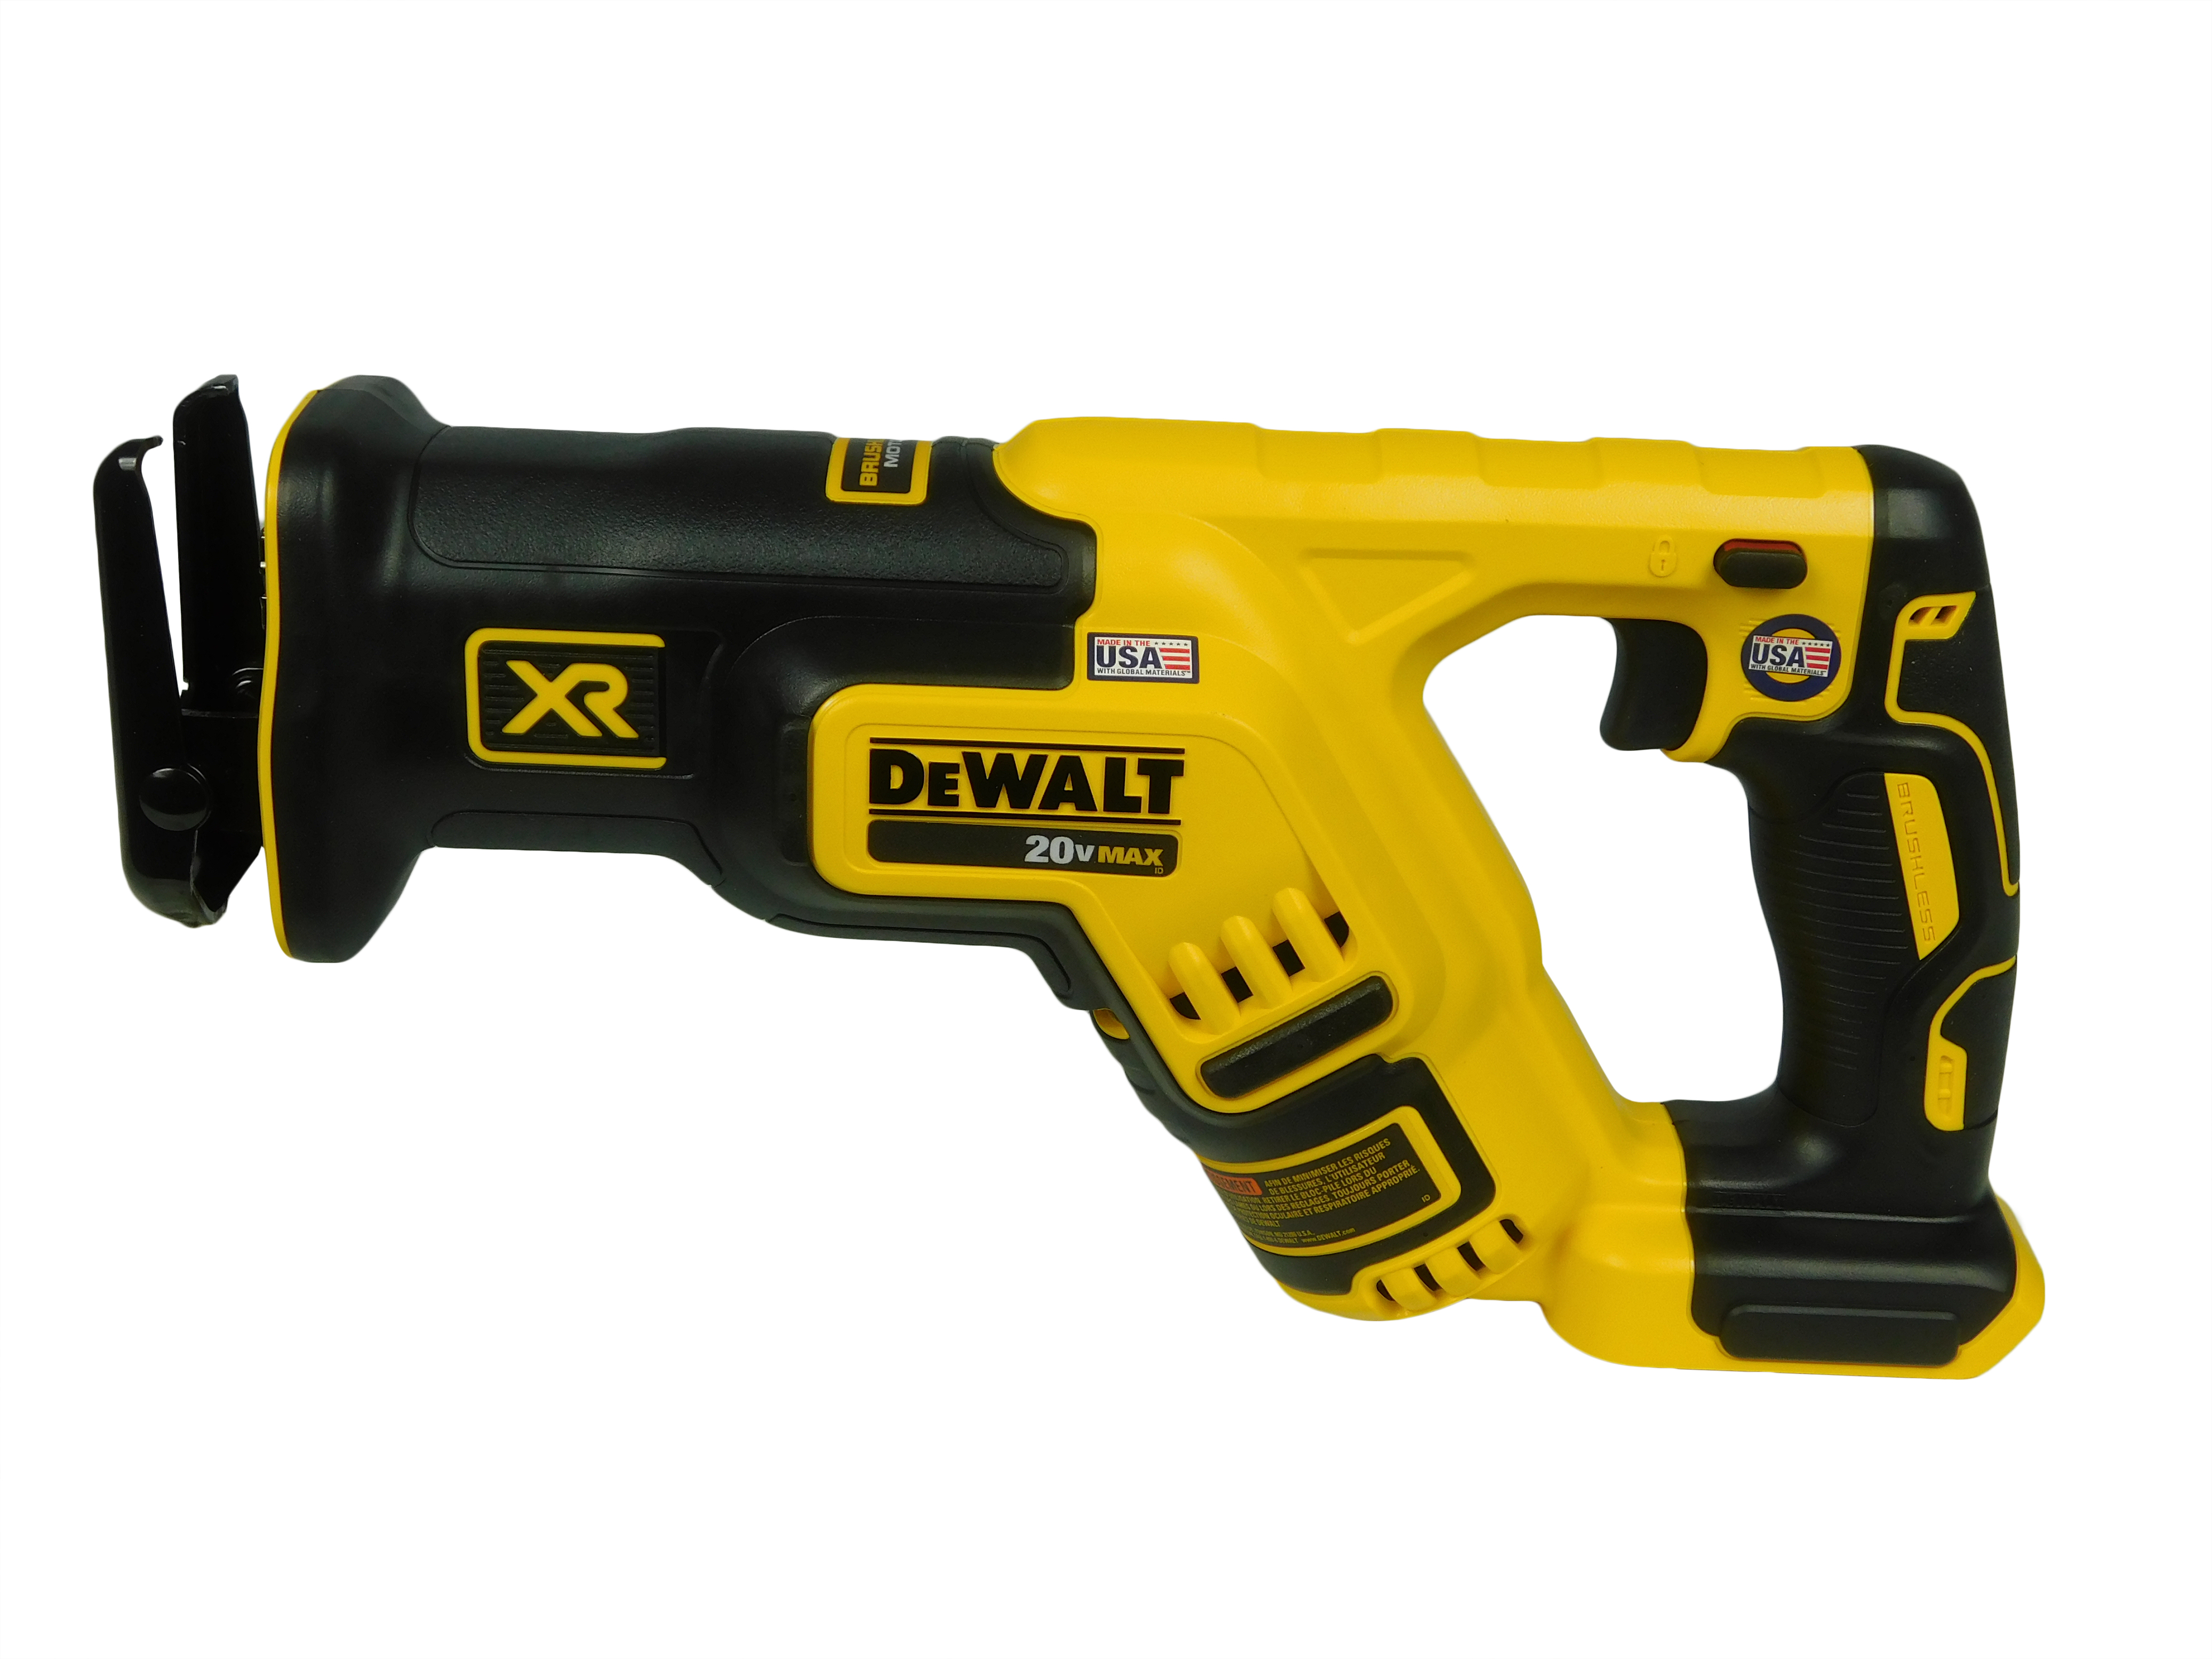 DEWALT-DCS367B-20V-Max-XR-Brushless-Compact-Reciprocating-Saw-Tool-Only-image-1